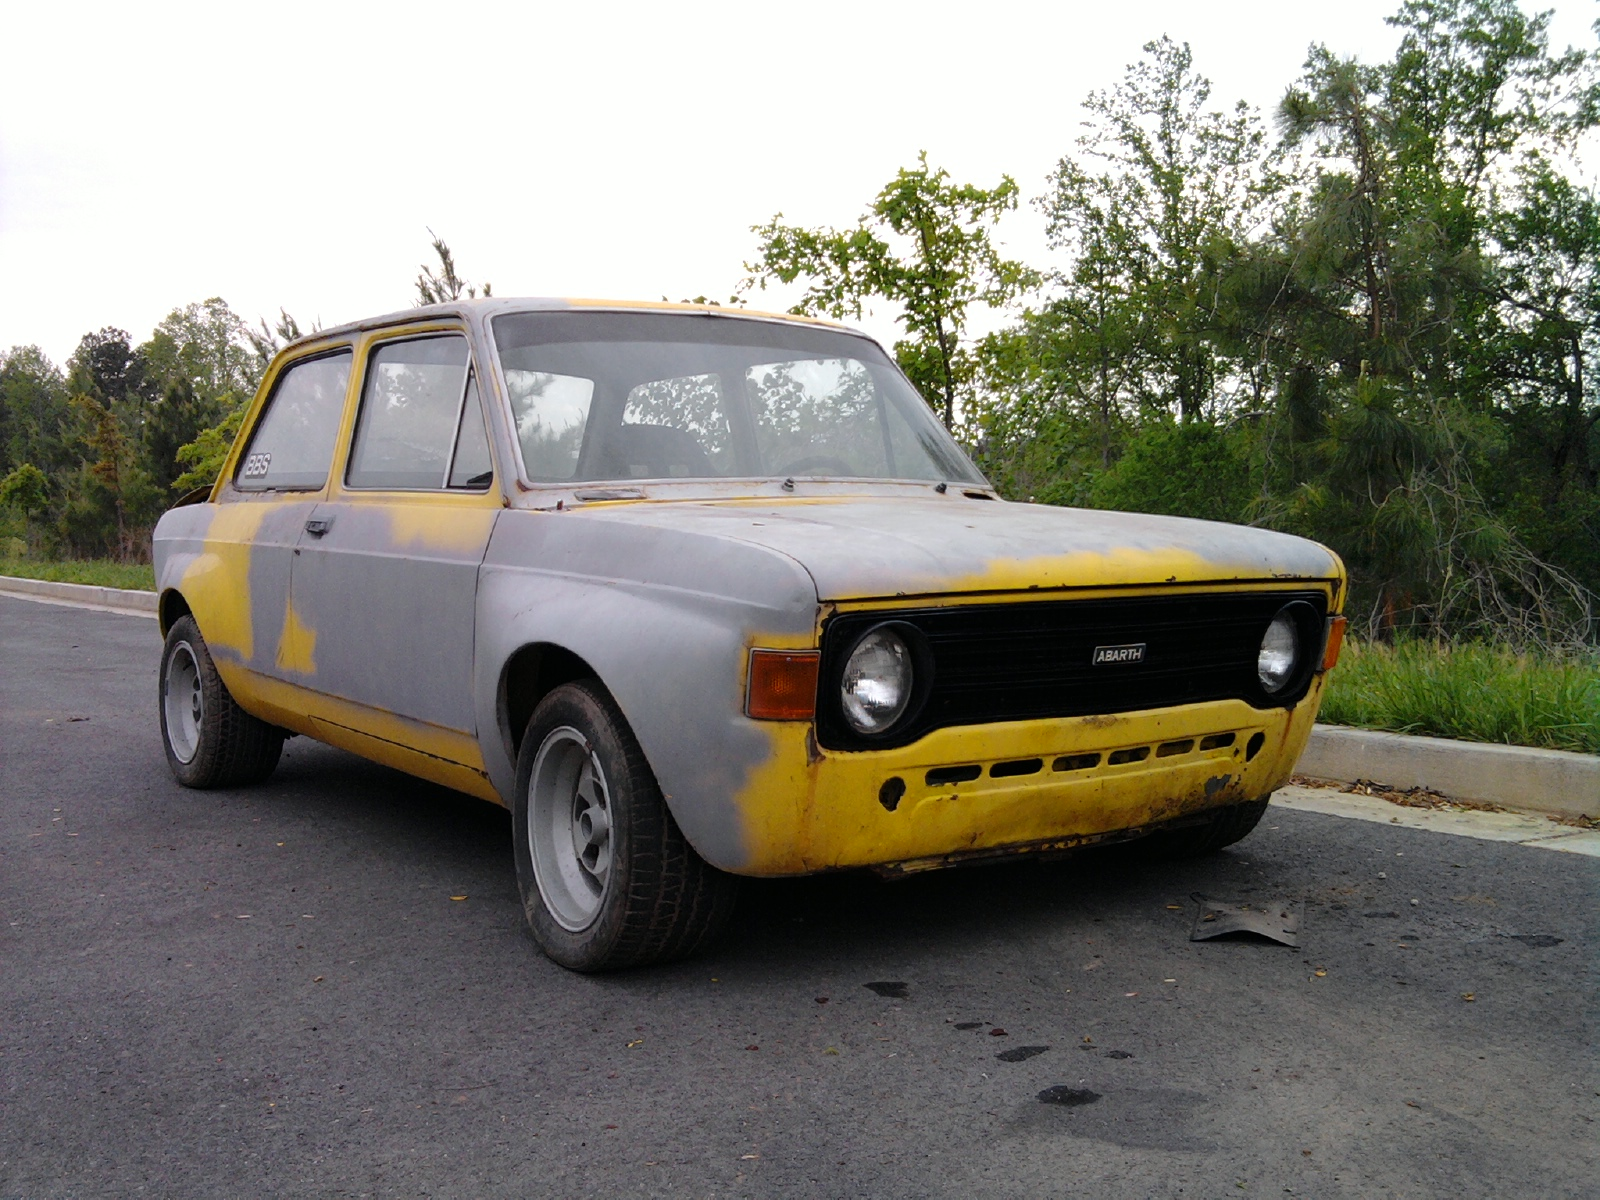 Rusty_Rabbit84's Fiat 128